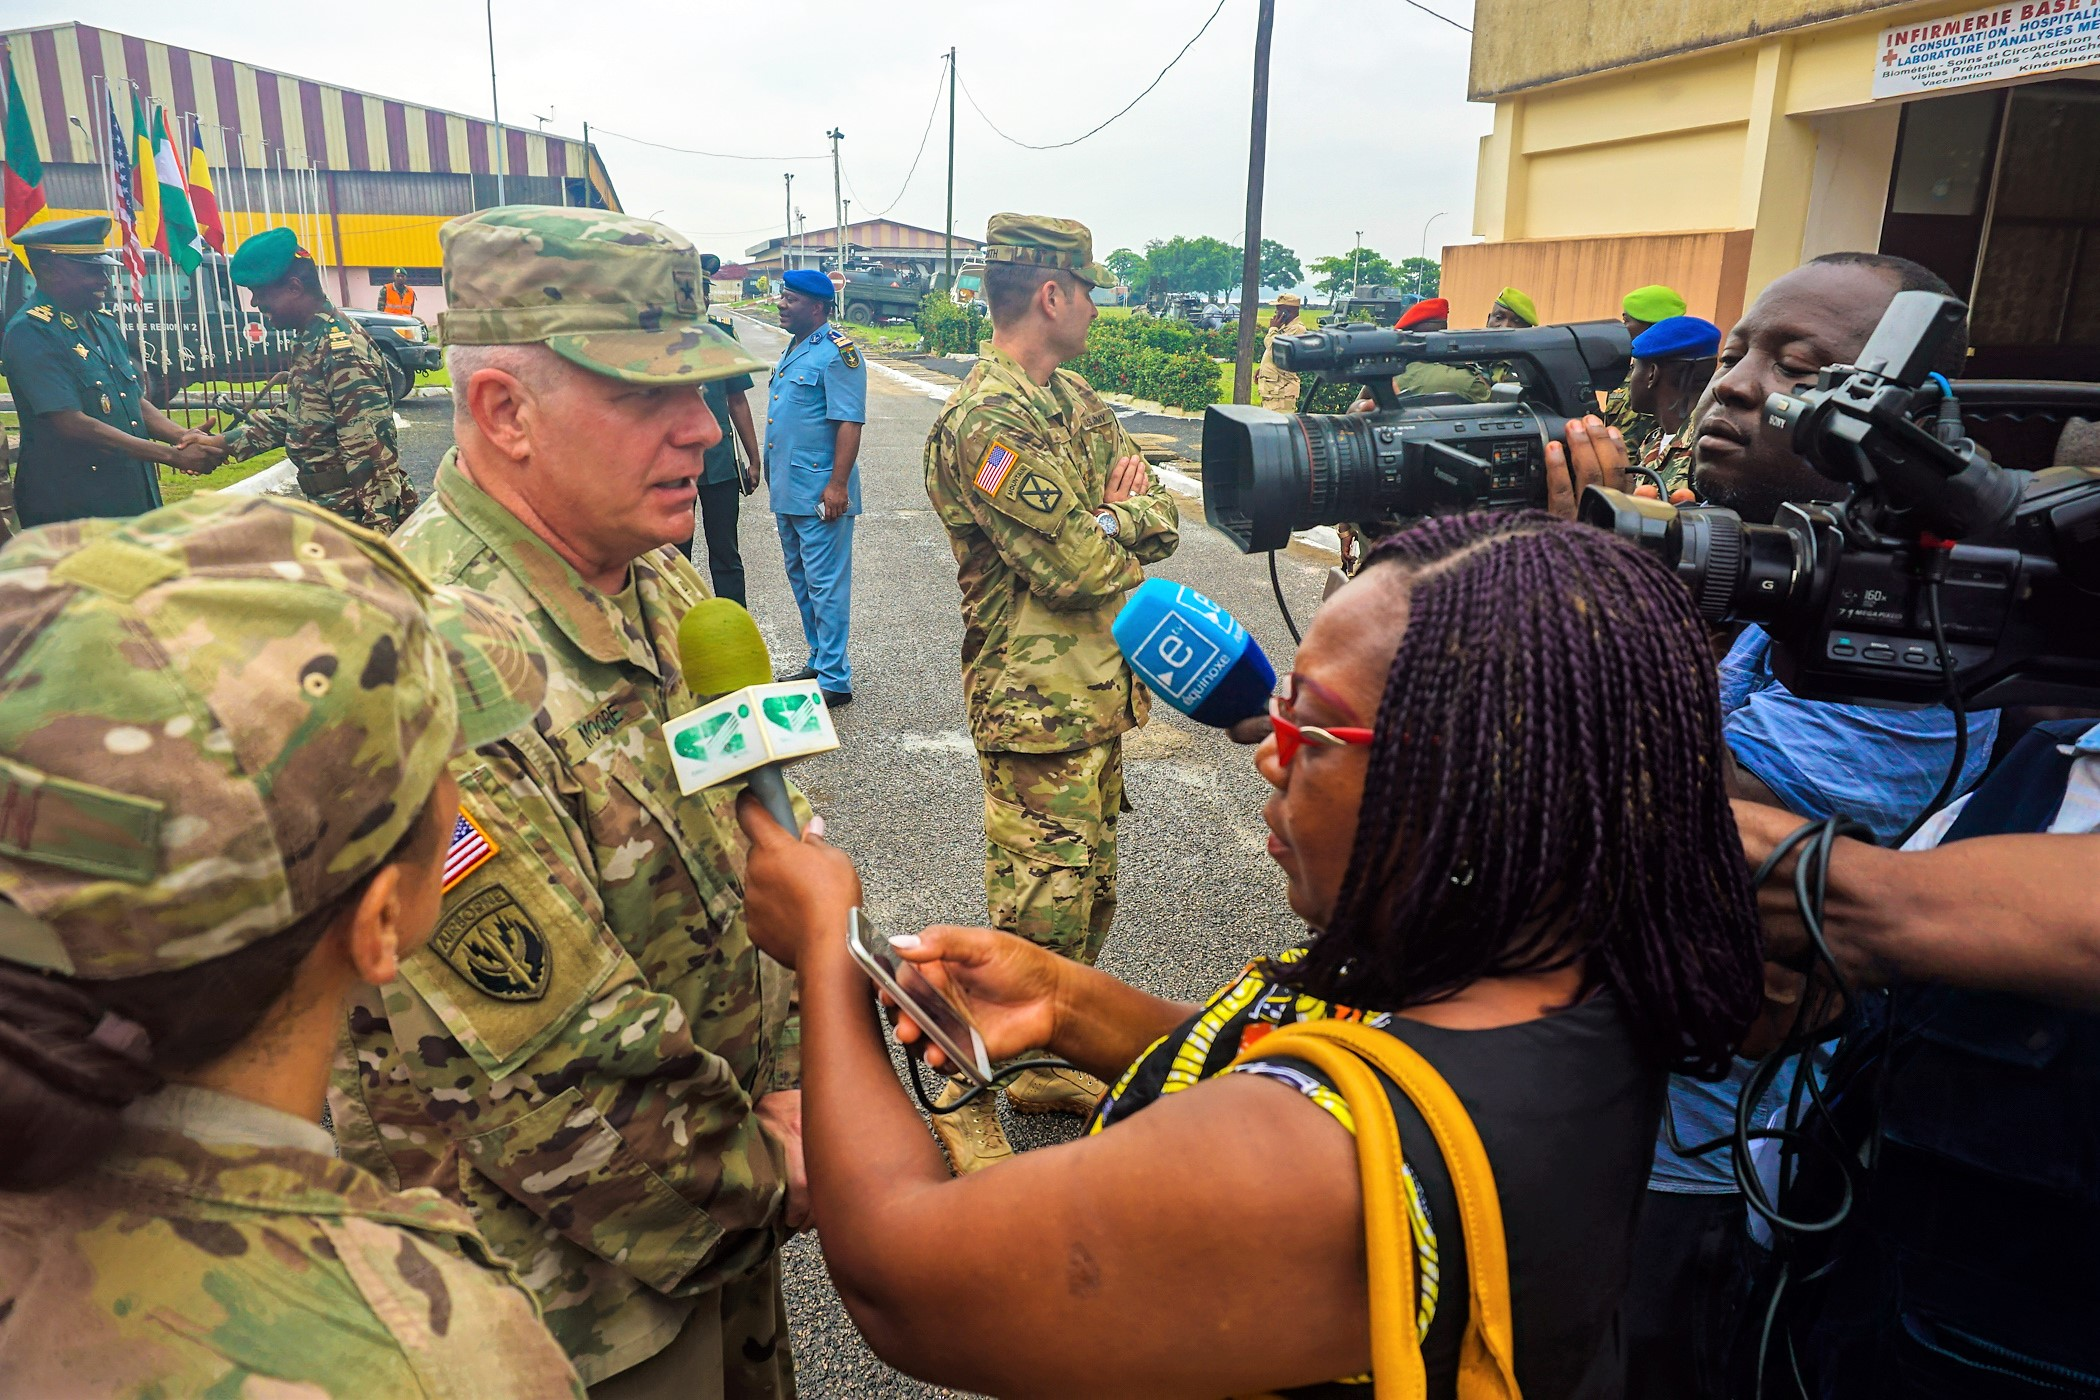 U.S. Army Brig. Gen. Kenneth Moore, U.S. Army Africa deputy commander, answers questions for local journalists following the opening ceremony for exercise Unified Focus 2017, held on the Douala Naval Base, April 24, 2017. UF 17 is a weeklong tabletop exercise that brings the military partners of the Lake Chad Basin area's Multinational Joint Task Force (MNJTF) together to practice joint planning and coordination through a series of scripted vignettes. (Photo courtesy of U.S. Army Africa Public Affairs/Released)